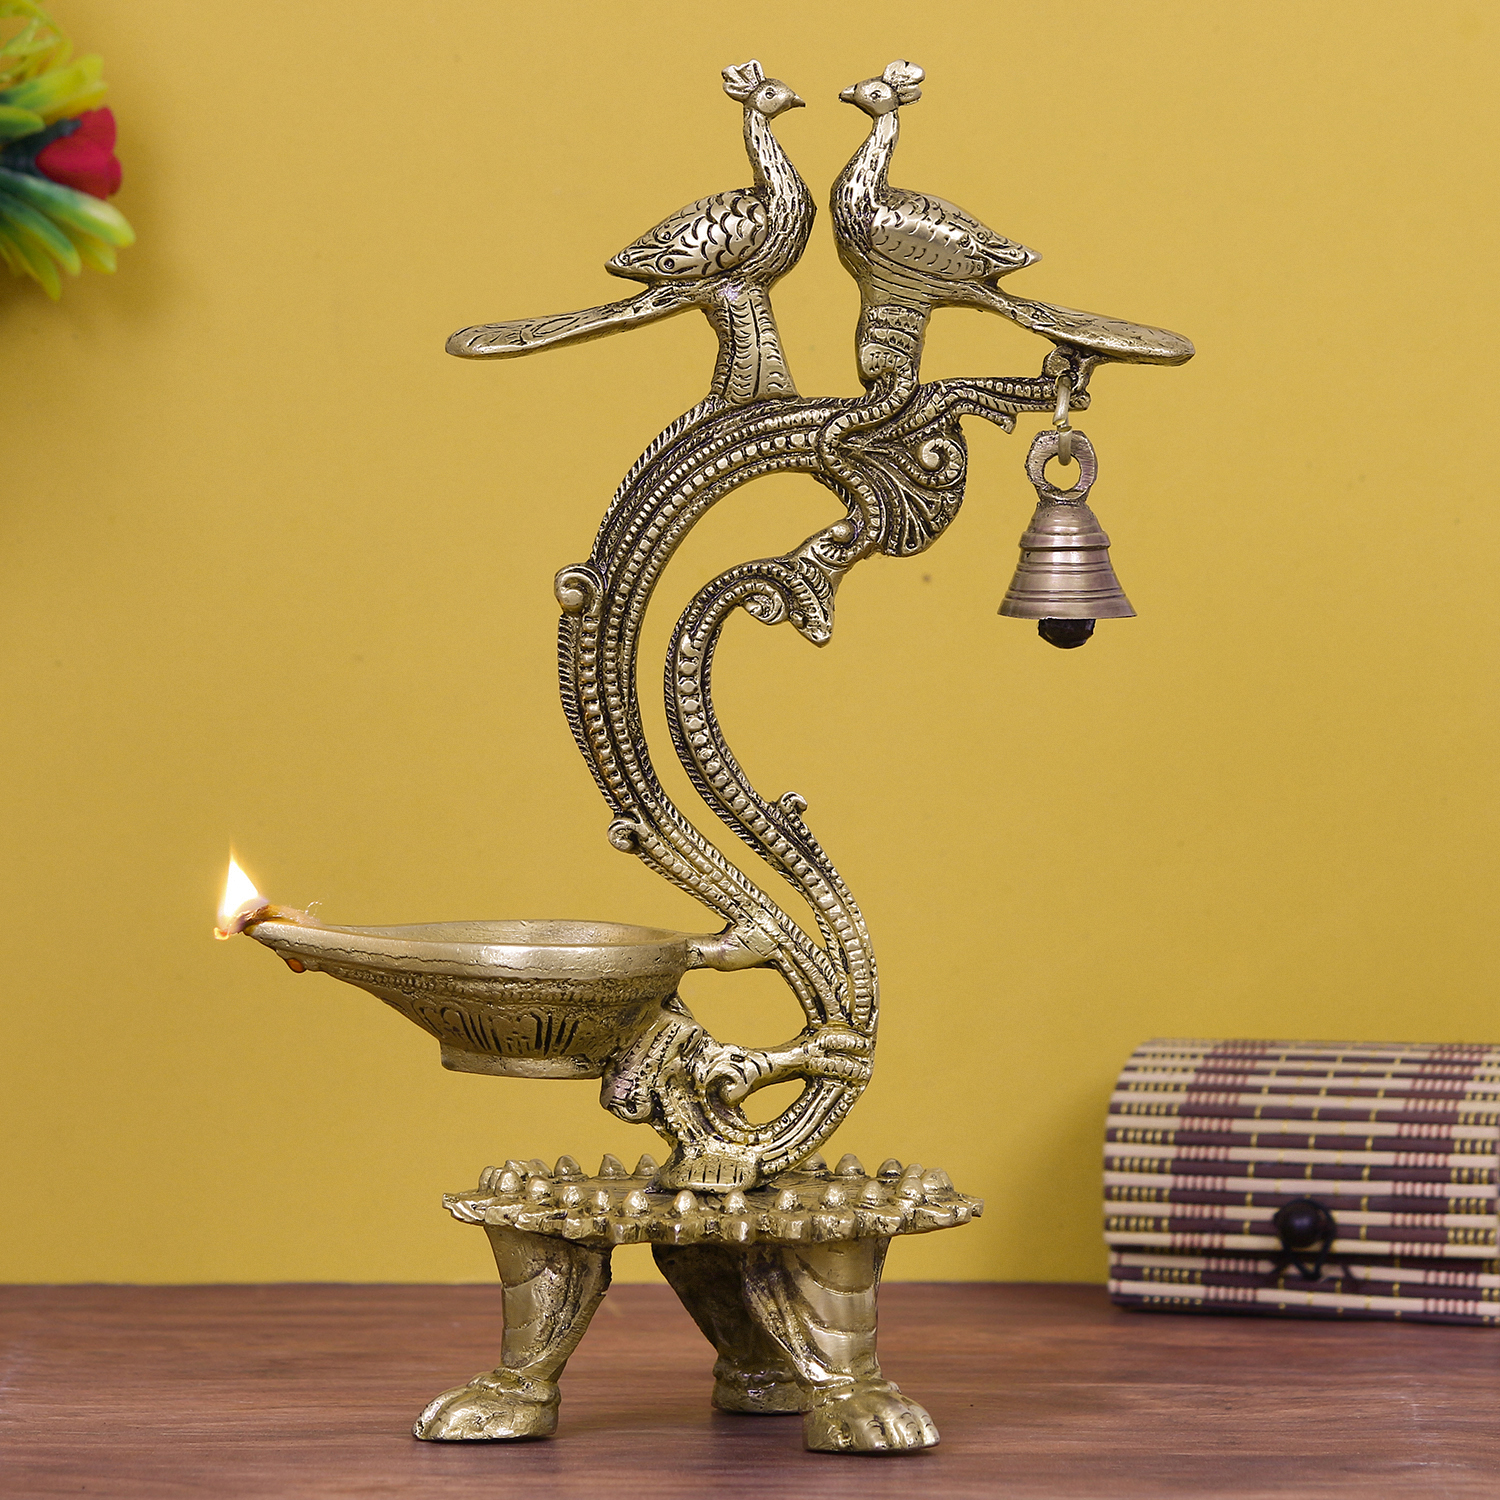 Antique Finish Decorative Handcrafted Brass Peocock Couple Diya with Bell and Stand Indian Home Decor